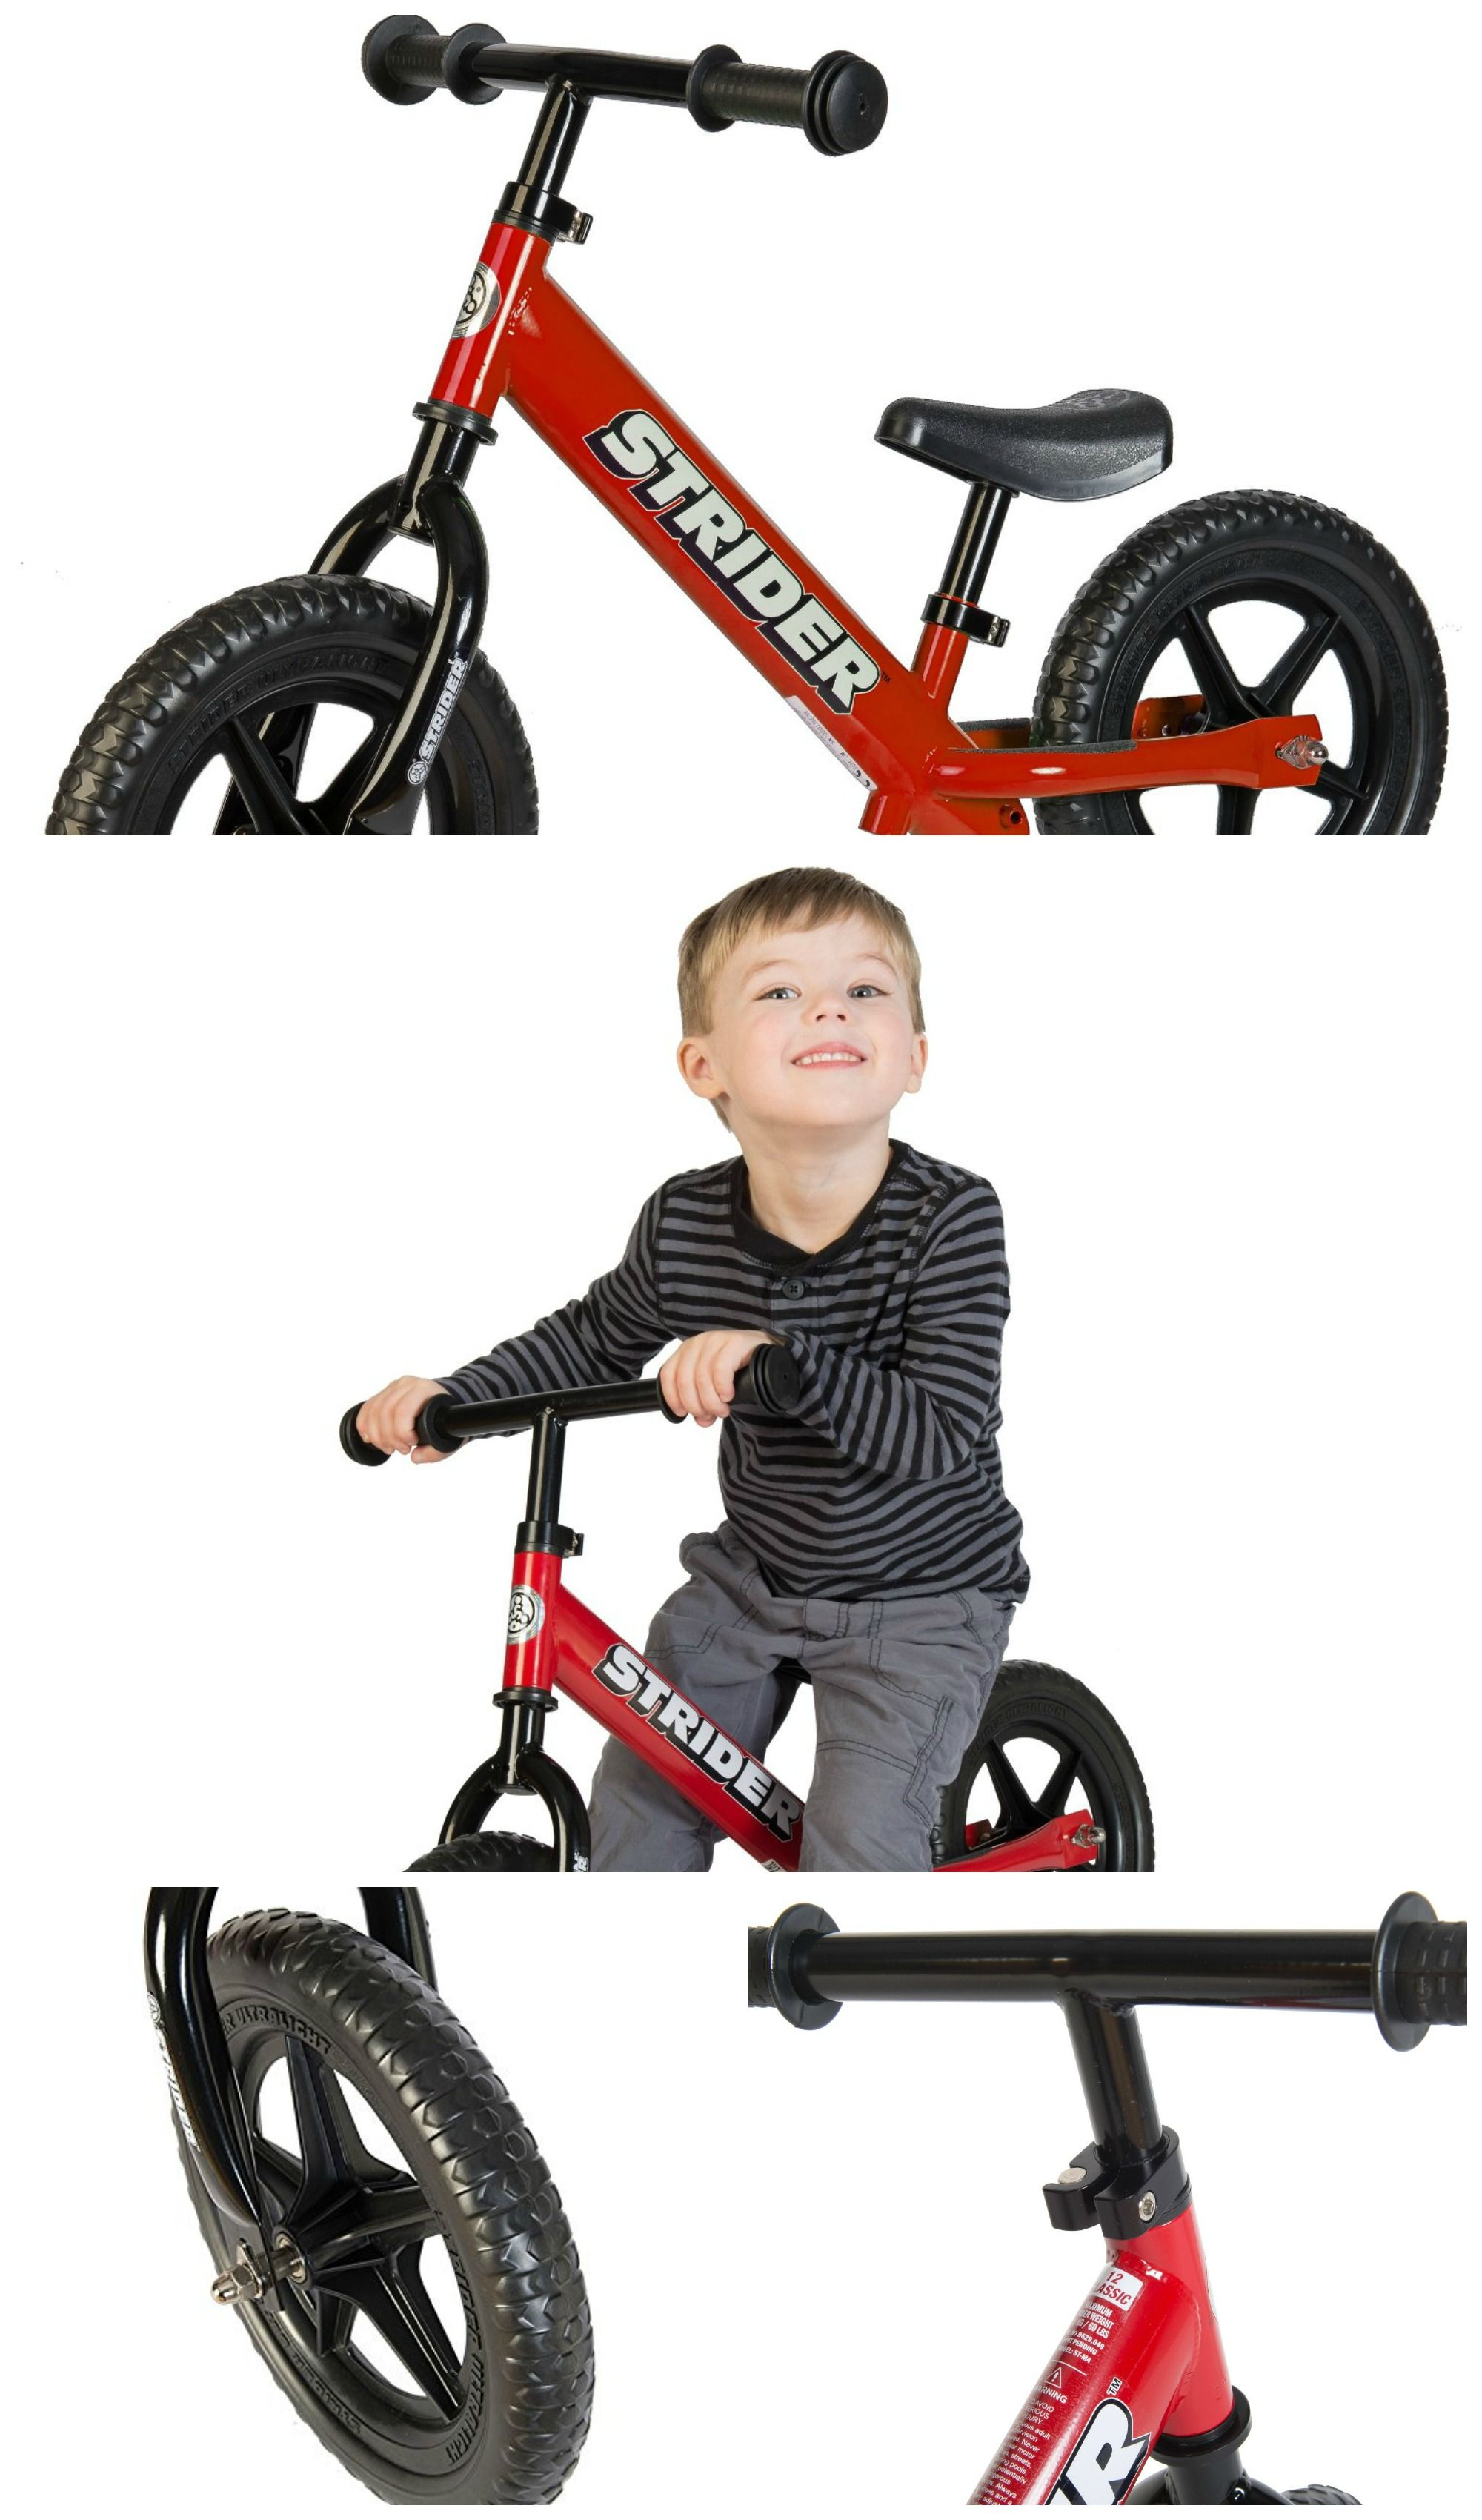 We Love Our Strider Balance Bike One Of The Best Ways For Kids To